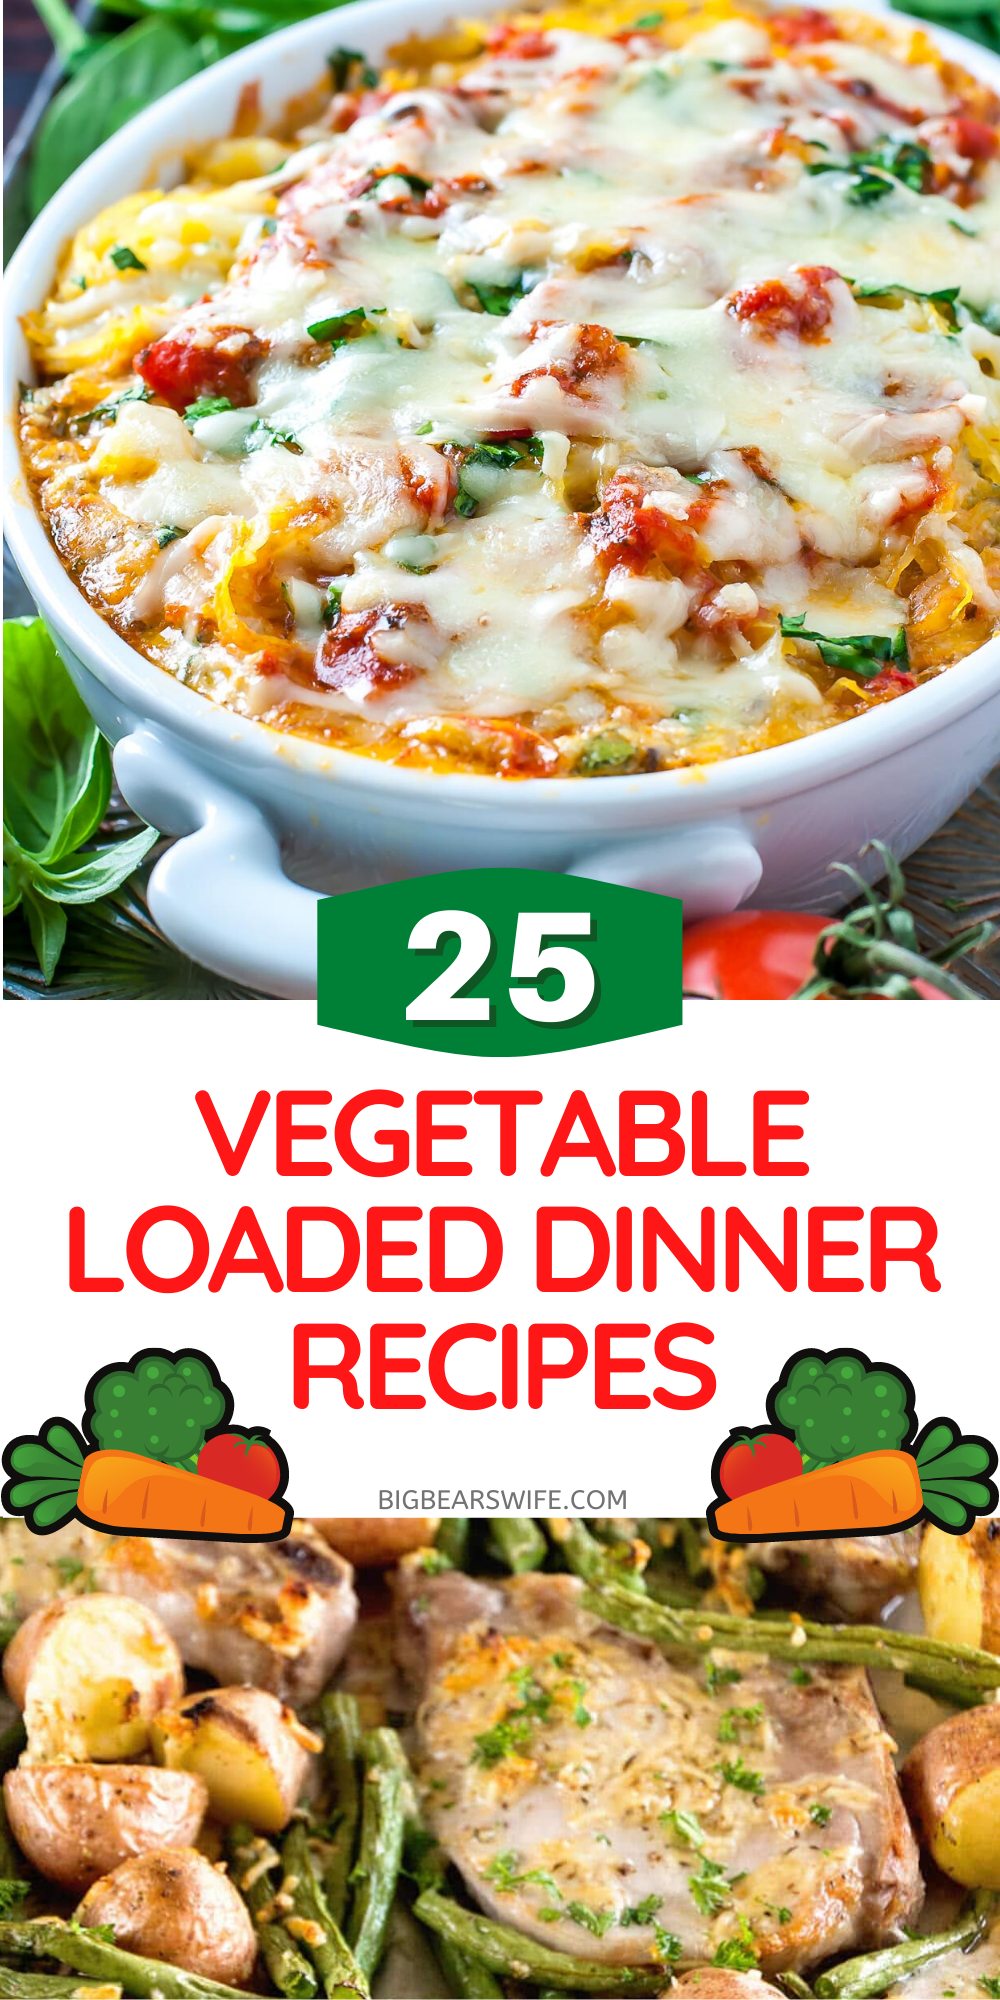 Trying to add more vegetables into your diet? Want your family to eat more vegetables without complaining? These25 Vegetable Loaded Dinner Recipes will do the trick! via @bigbearswife